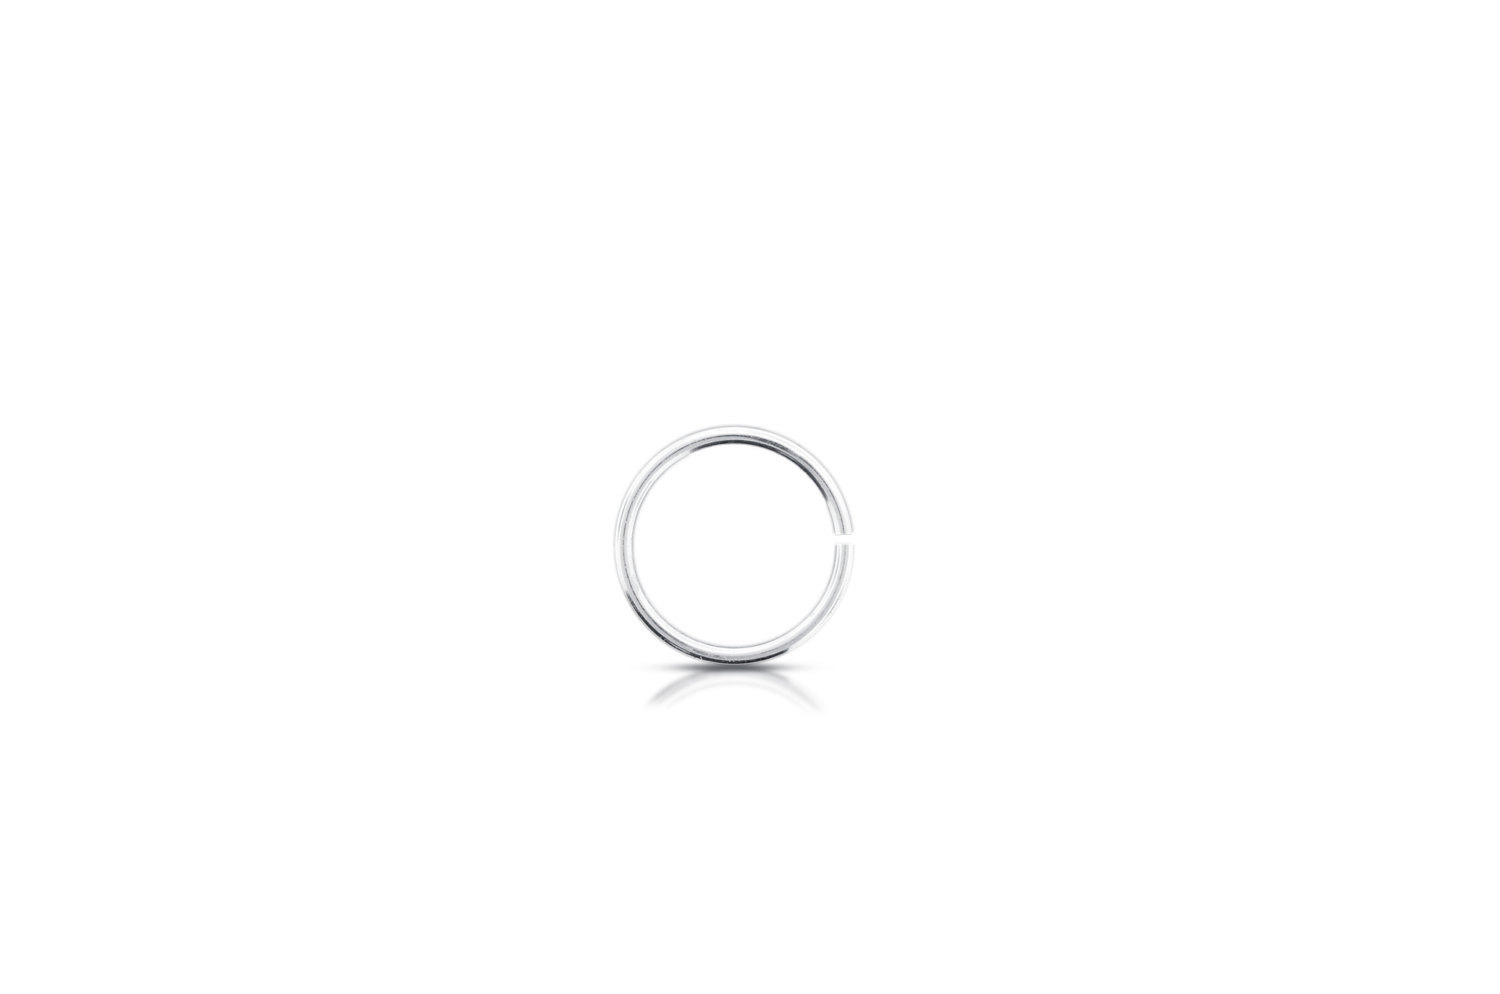 Primary image for Jump Rings, Open Jump Rings, Sterling Silver, 22ga 5mm, Pkg Of 50pcs (2058)/1